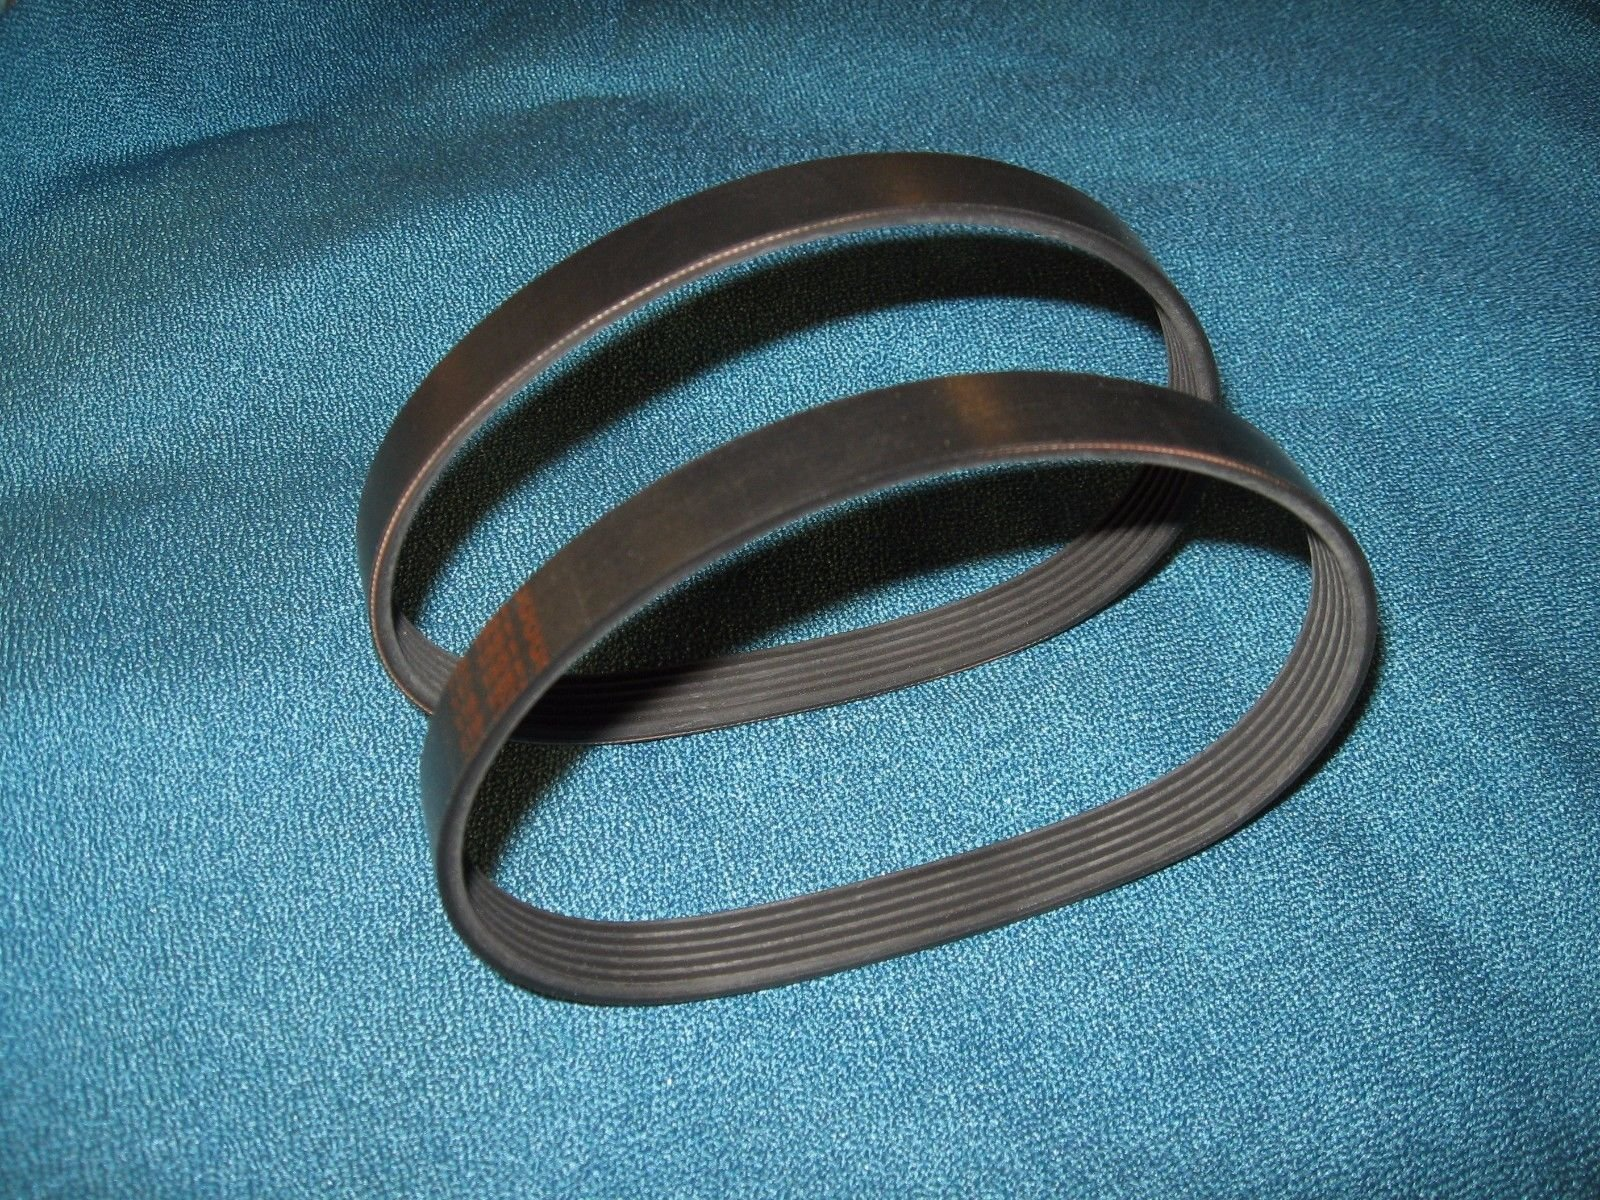 2 NEW DRIVE BELTS MADE IN USA FOR DELTA 22-580 PLANER